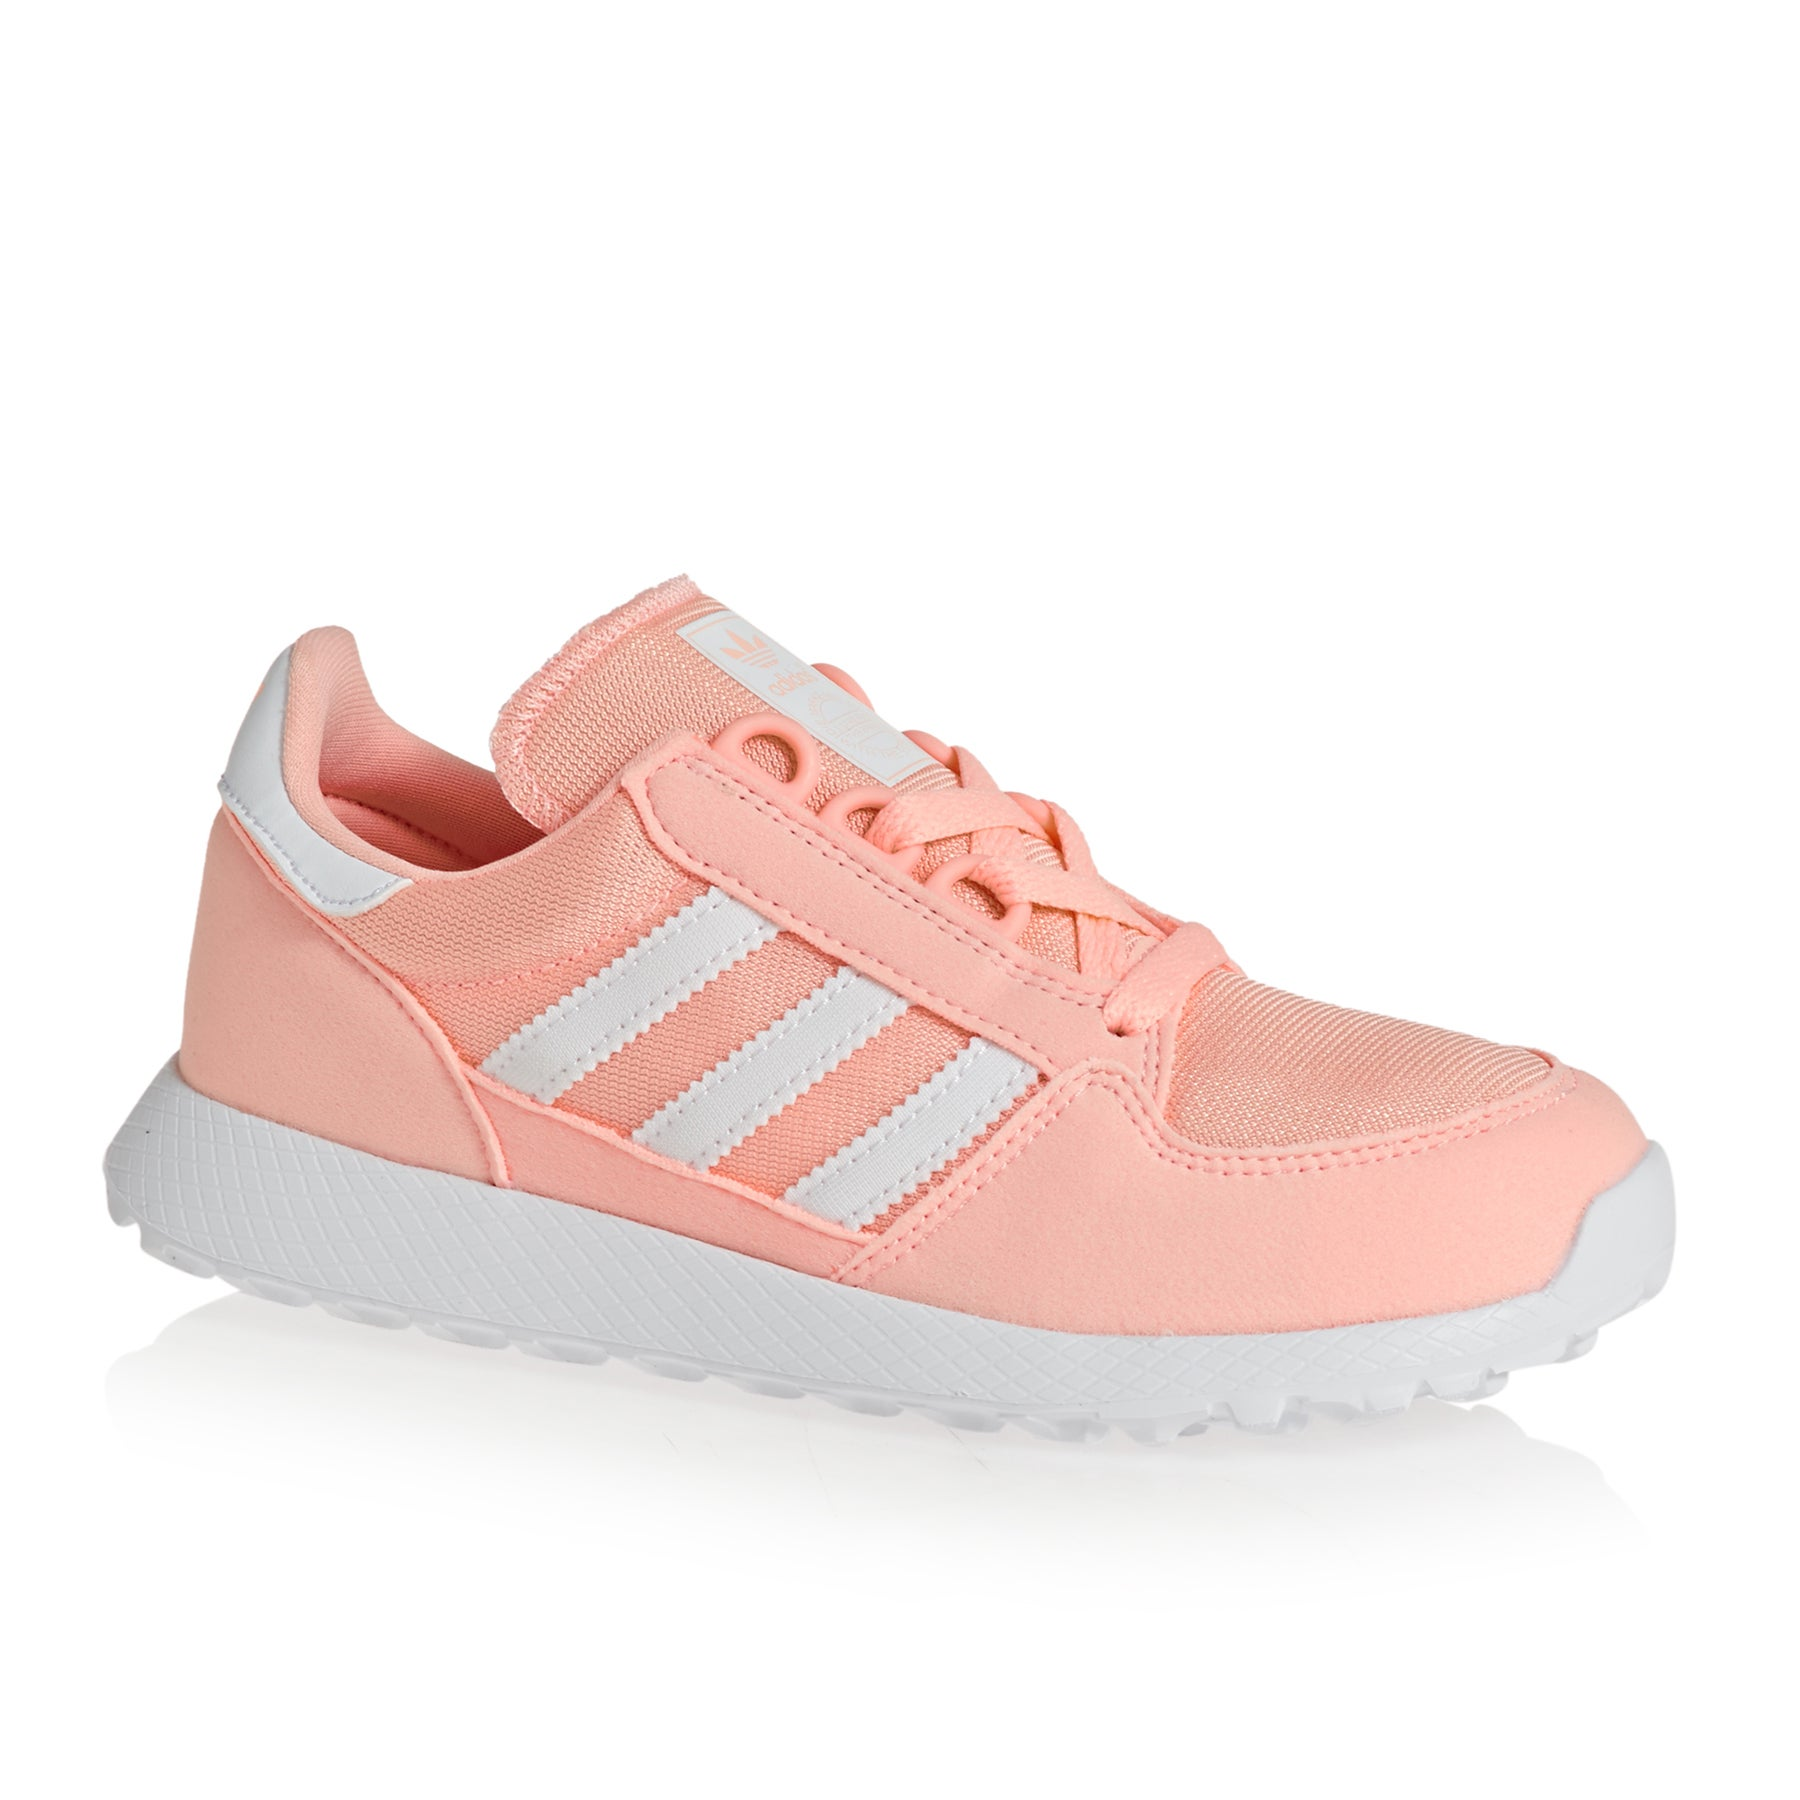 Adidas Originals Forest Grove C Kids Shoes - Clearly Coral